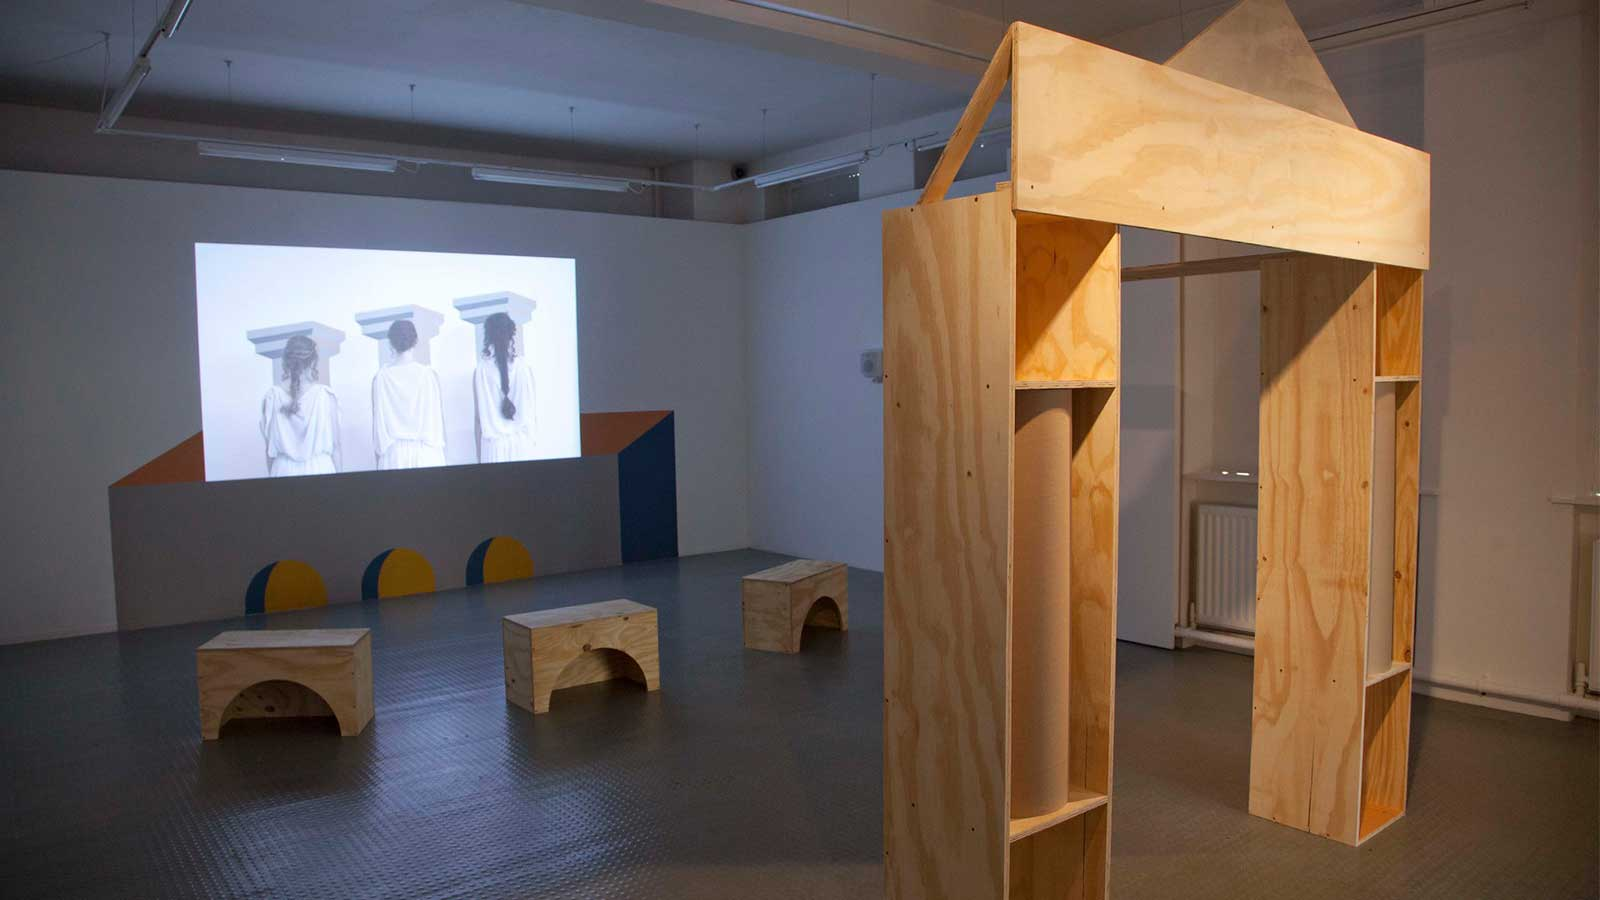 A photograph of Emily Speed's exhibition featuring a gateway made of wooden building blocks and a screen showing a film.